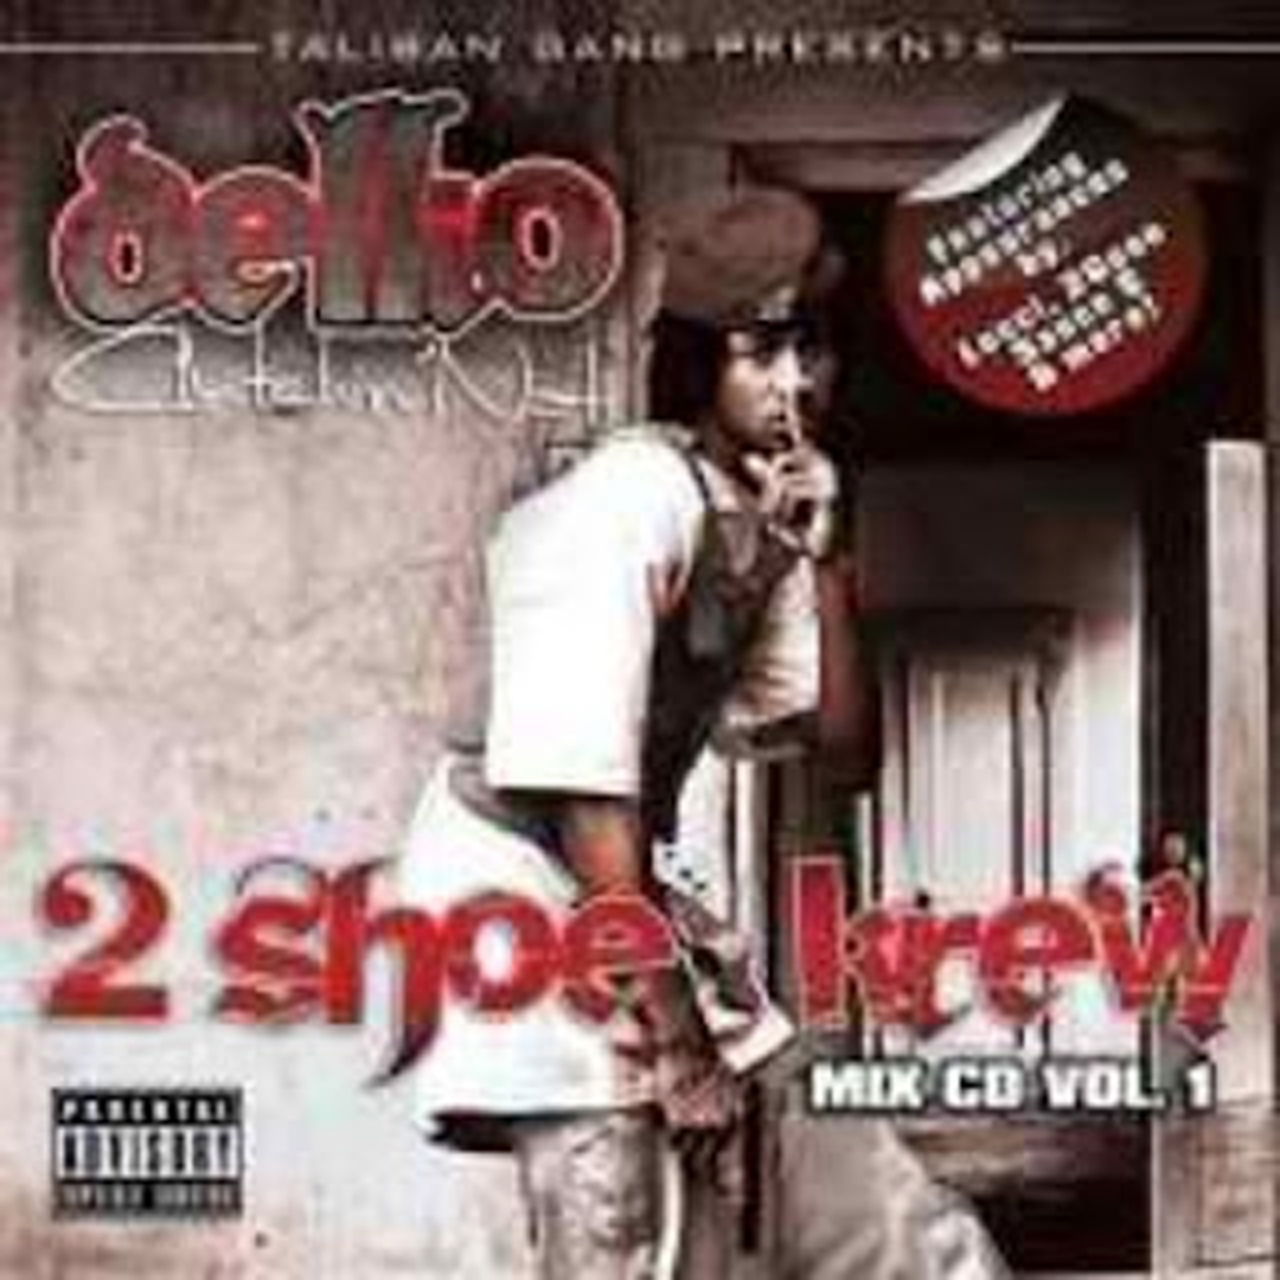 Dellio – 2 Shoe Krew Vol 1